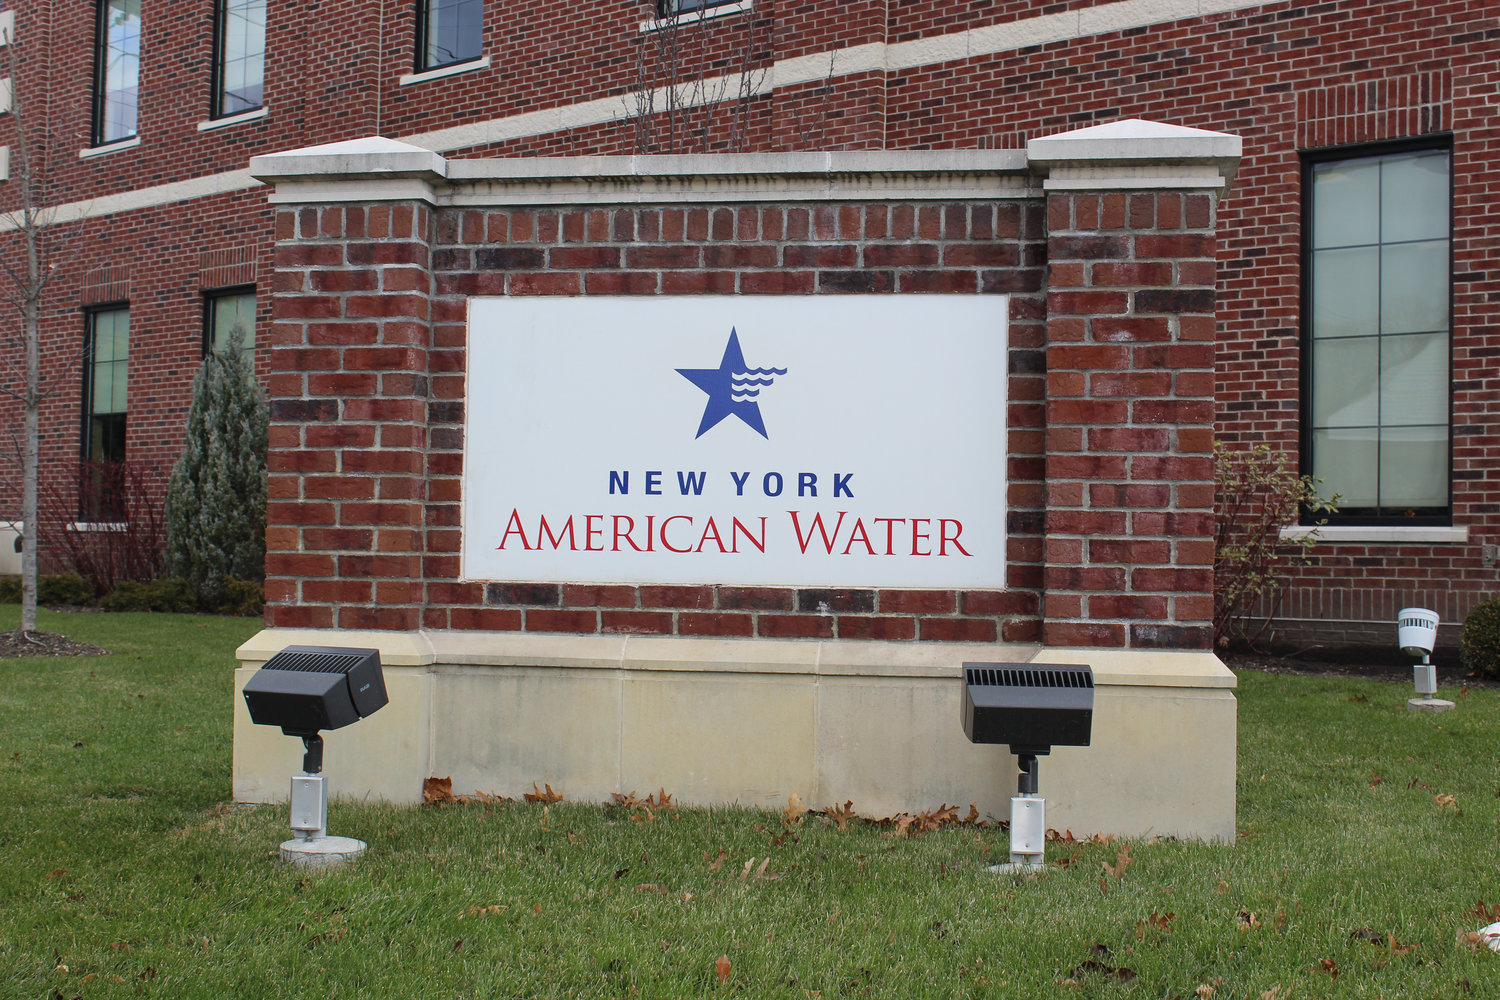 The Senate recently passed a bill that could help eliminate a special franchise tax for New York American Water, in turn causing customers to see a decrease in their bills.